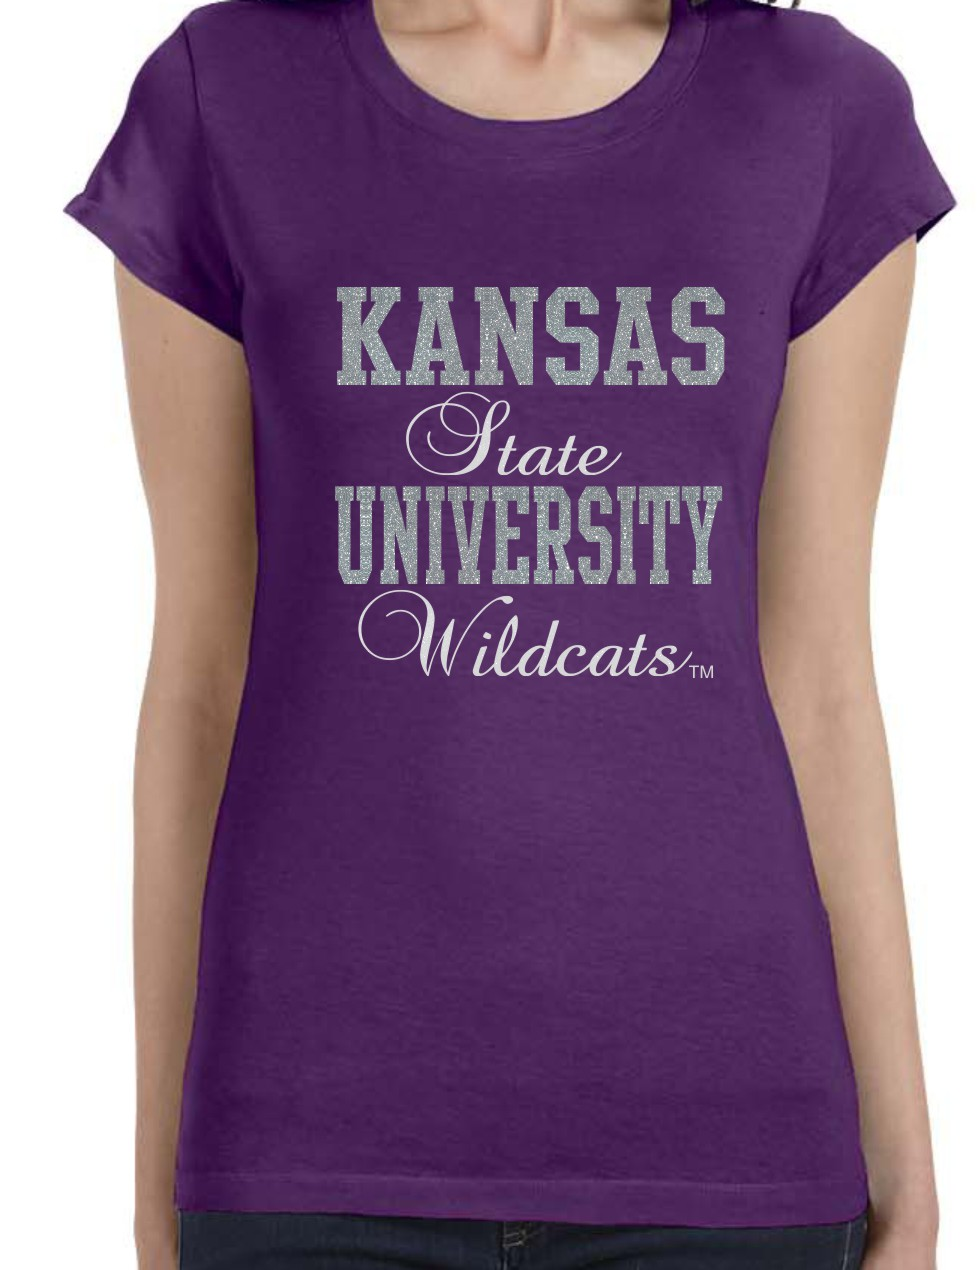 Kansas State University Wildcats in Silver and White Glitter